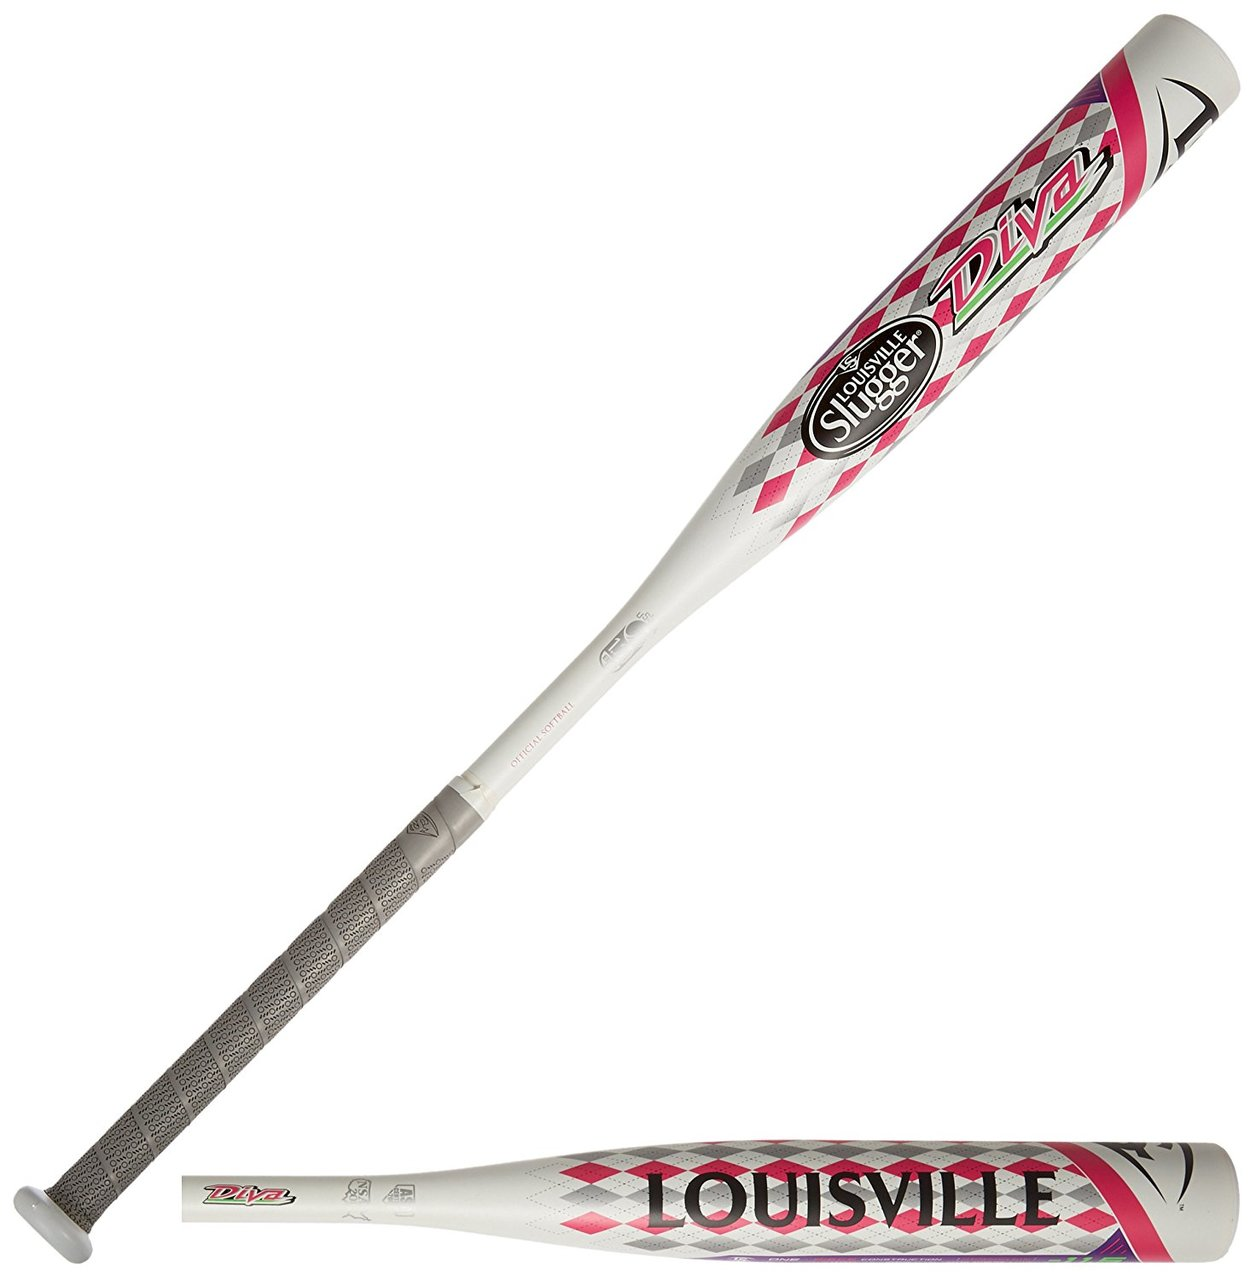 louisville-slugger-fpdv151-2015-diva-11-5-fast-pitch-baseball-bat-28-inch-16-5-oz WTLFPDV151-28 Louisville  The Divas alloy construction and 2 1/4 barrel give it a